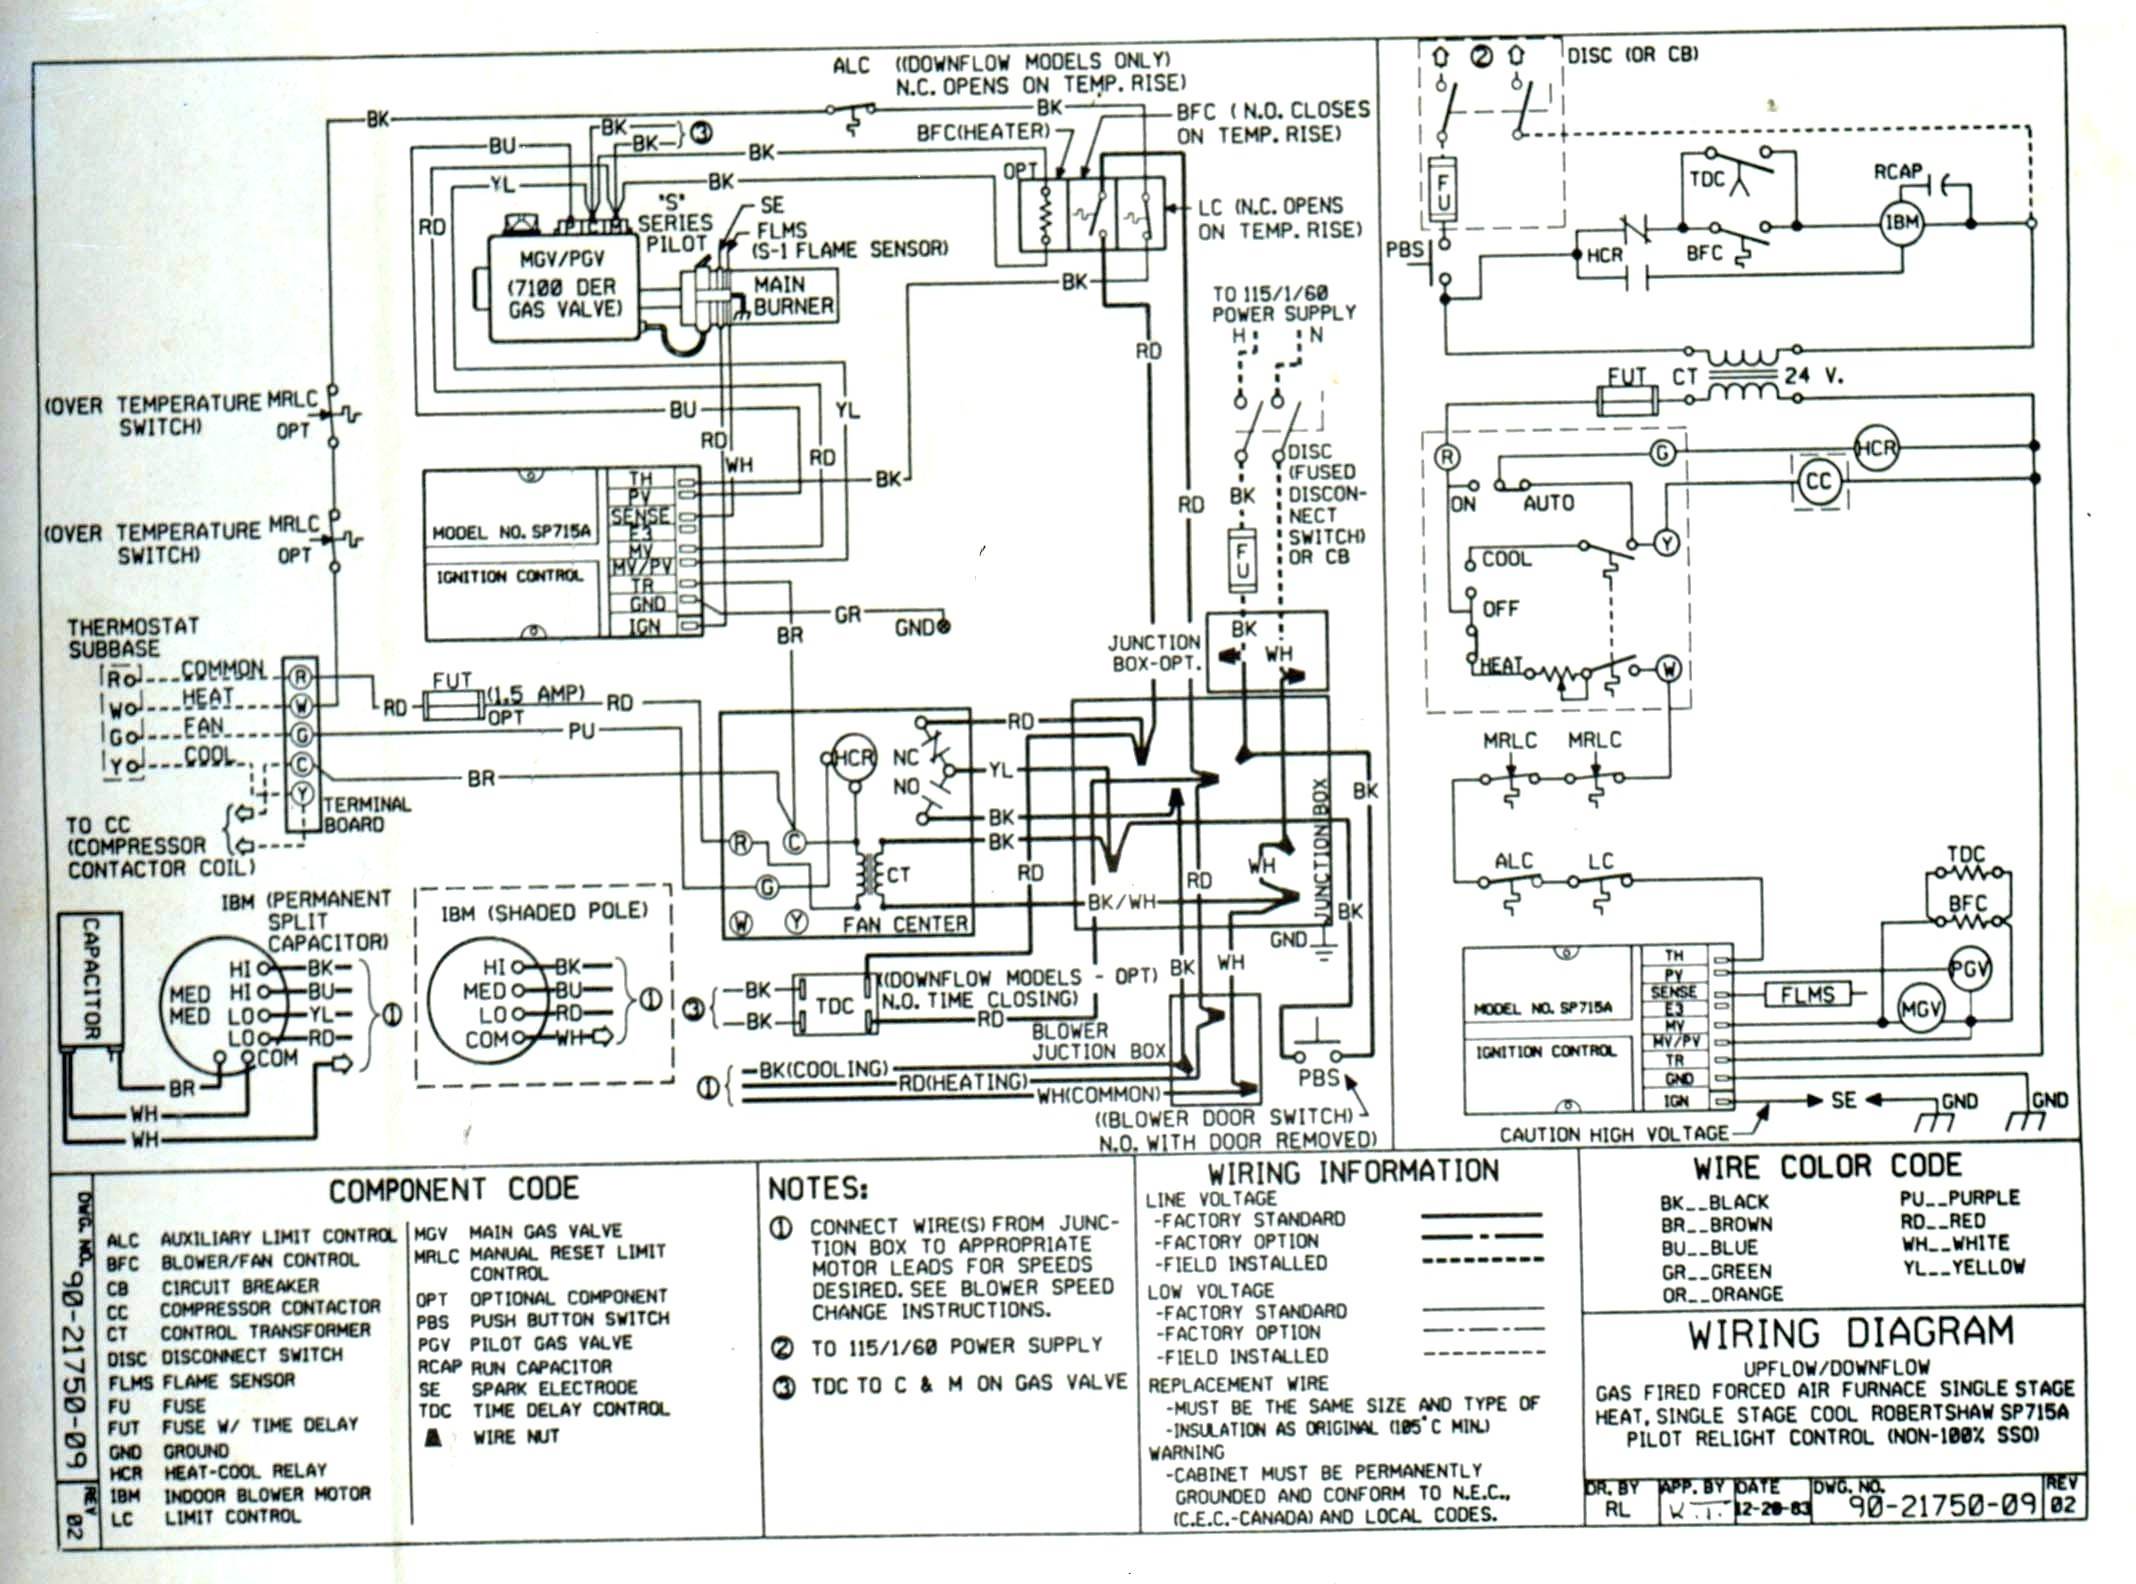 Gas Pump Diagram Goodman Heat Pump Package Unit Wiring Diagram Sample Of Gas Pump Diagram Switch Wiring Diagram Gallery